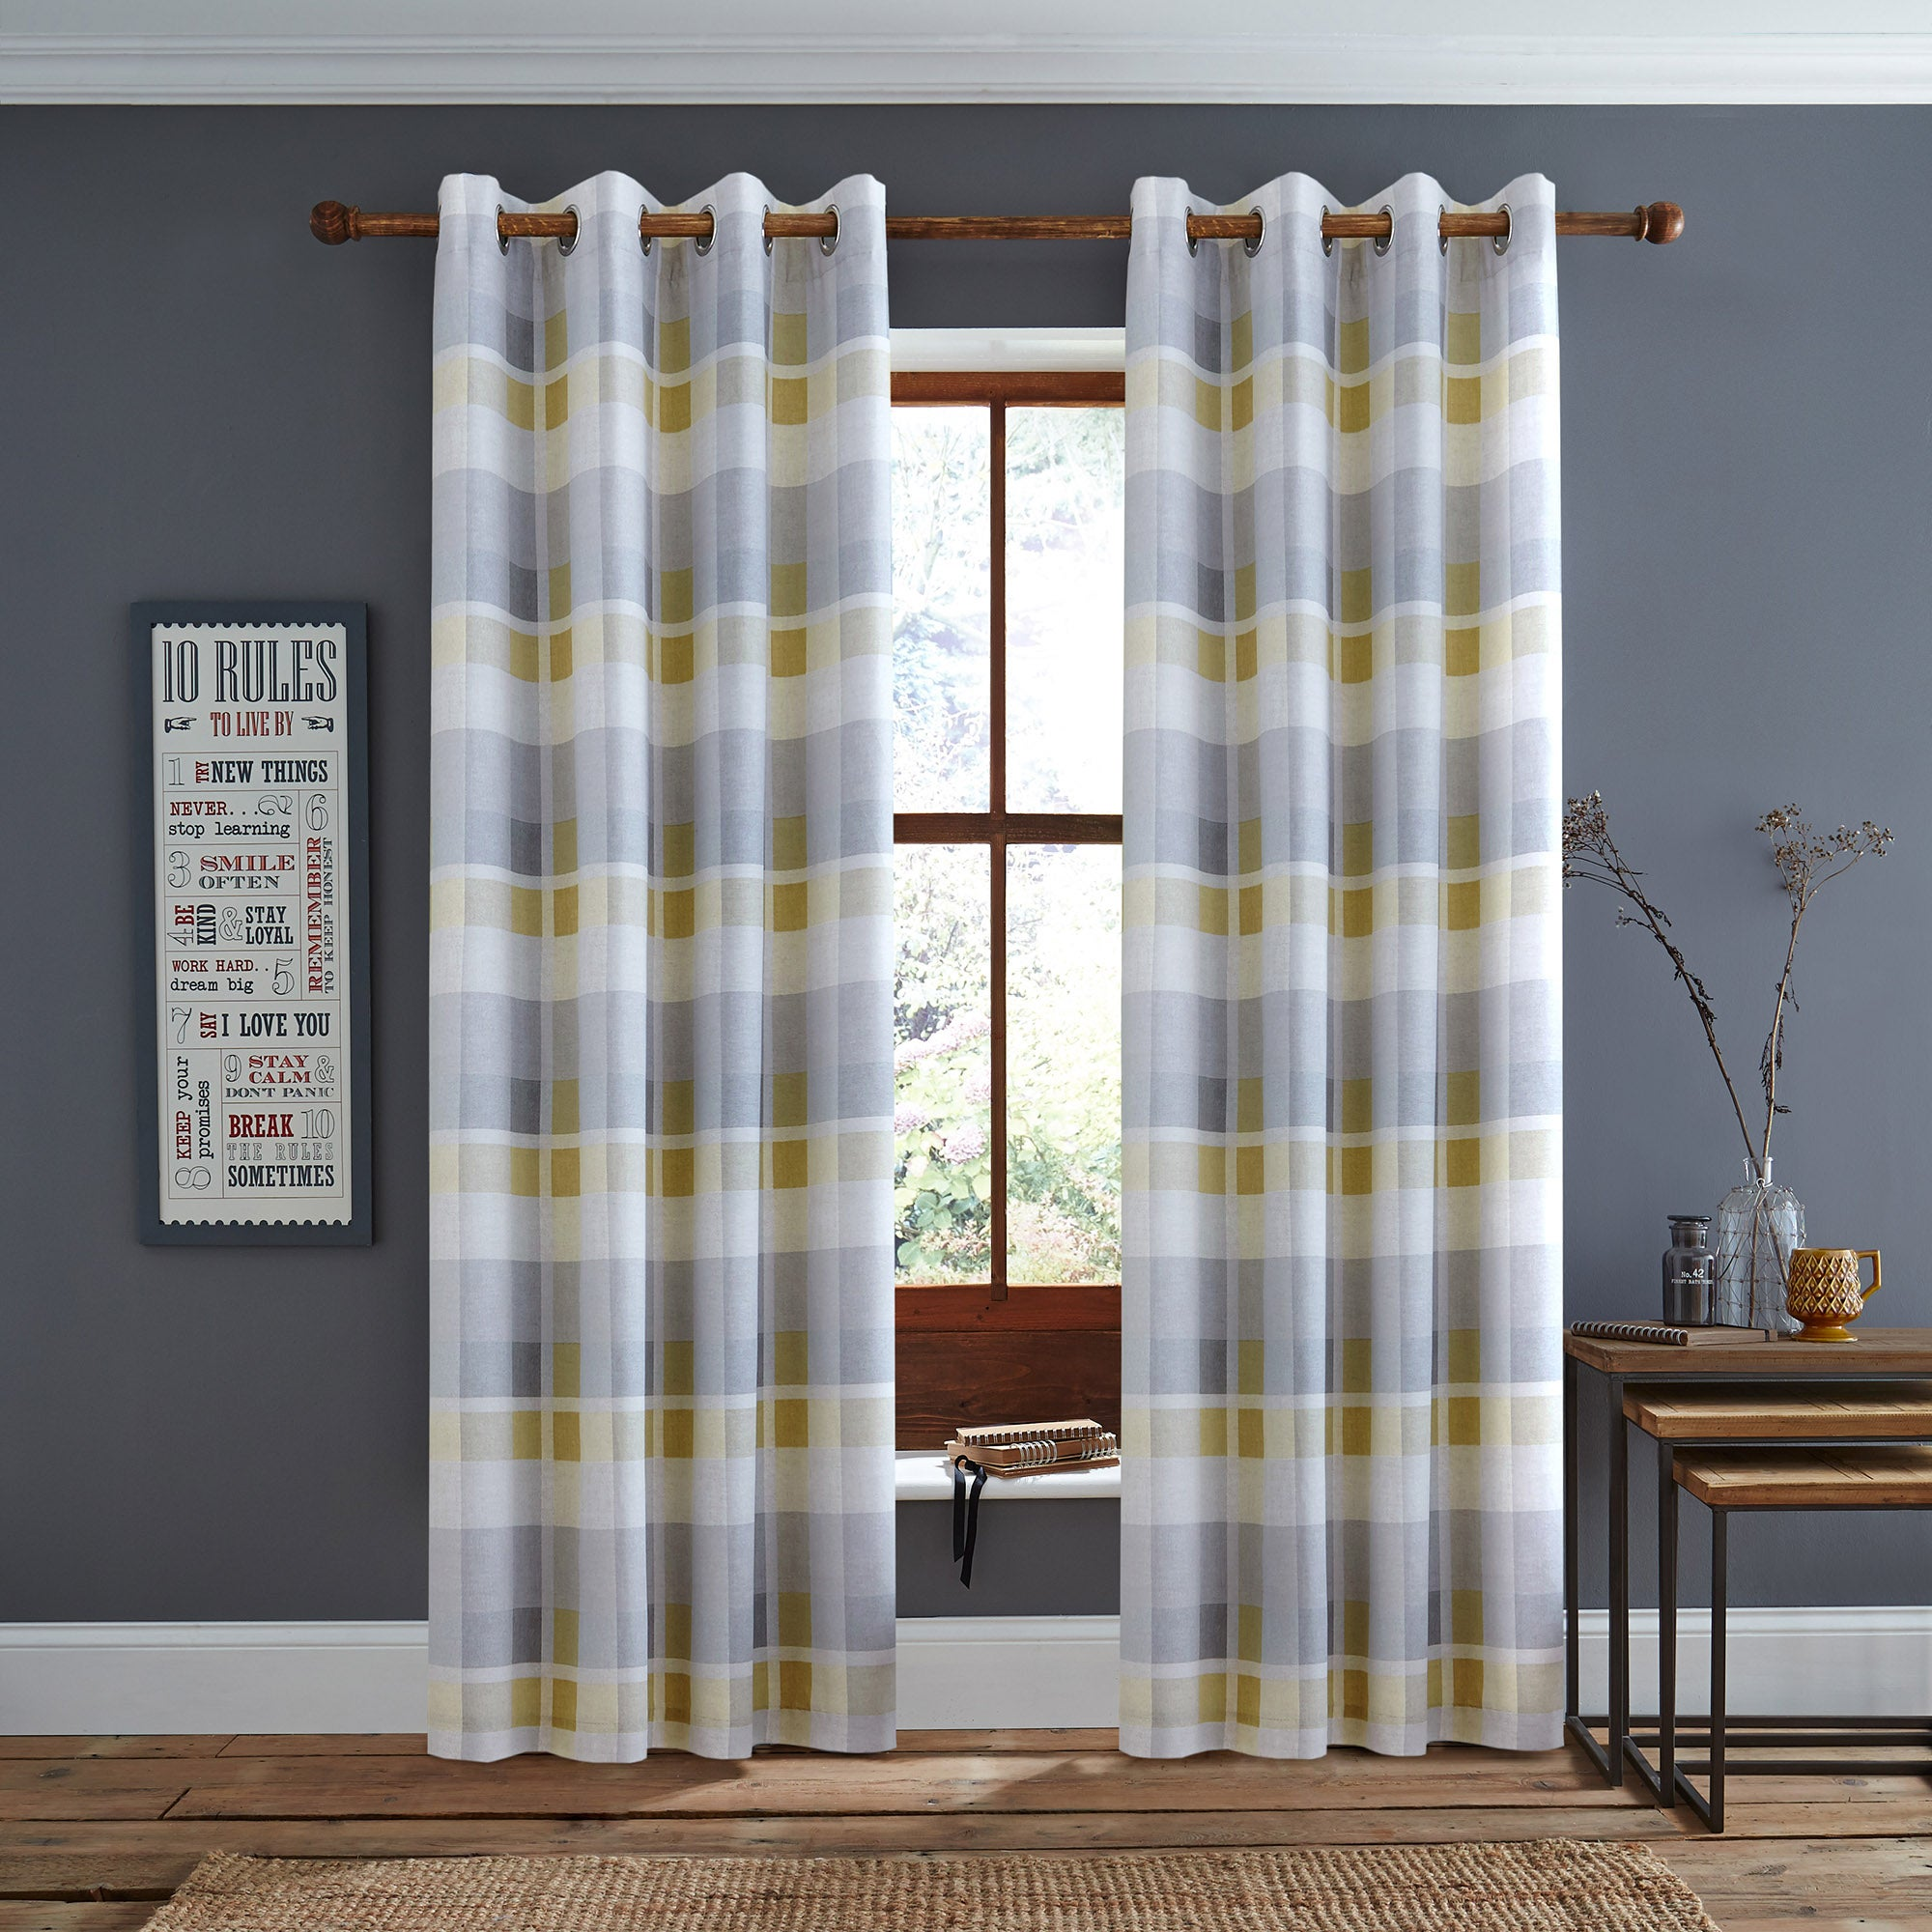 Ochre Berwick Check Eyelet Curtains Ochre (Yellow)